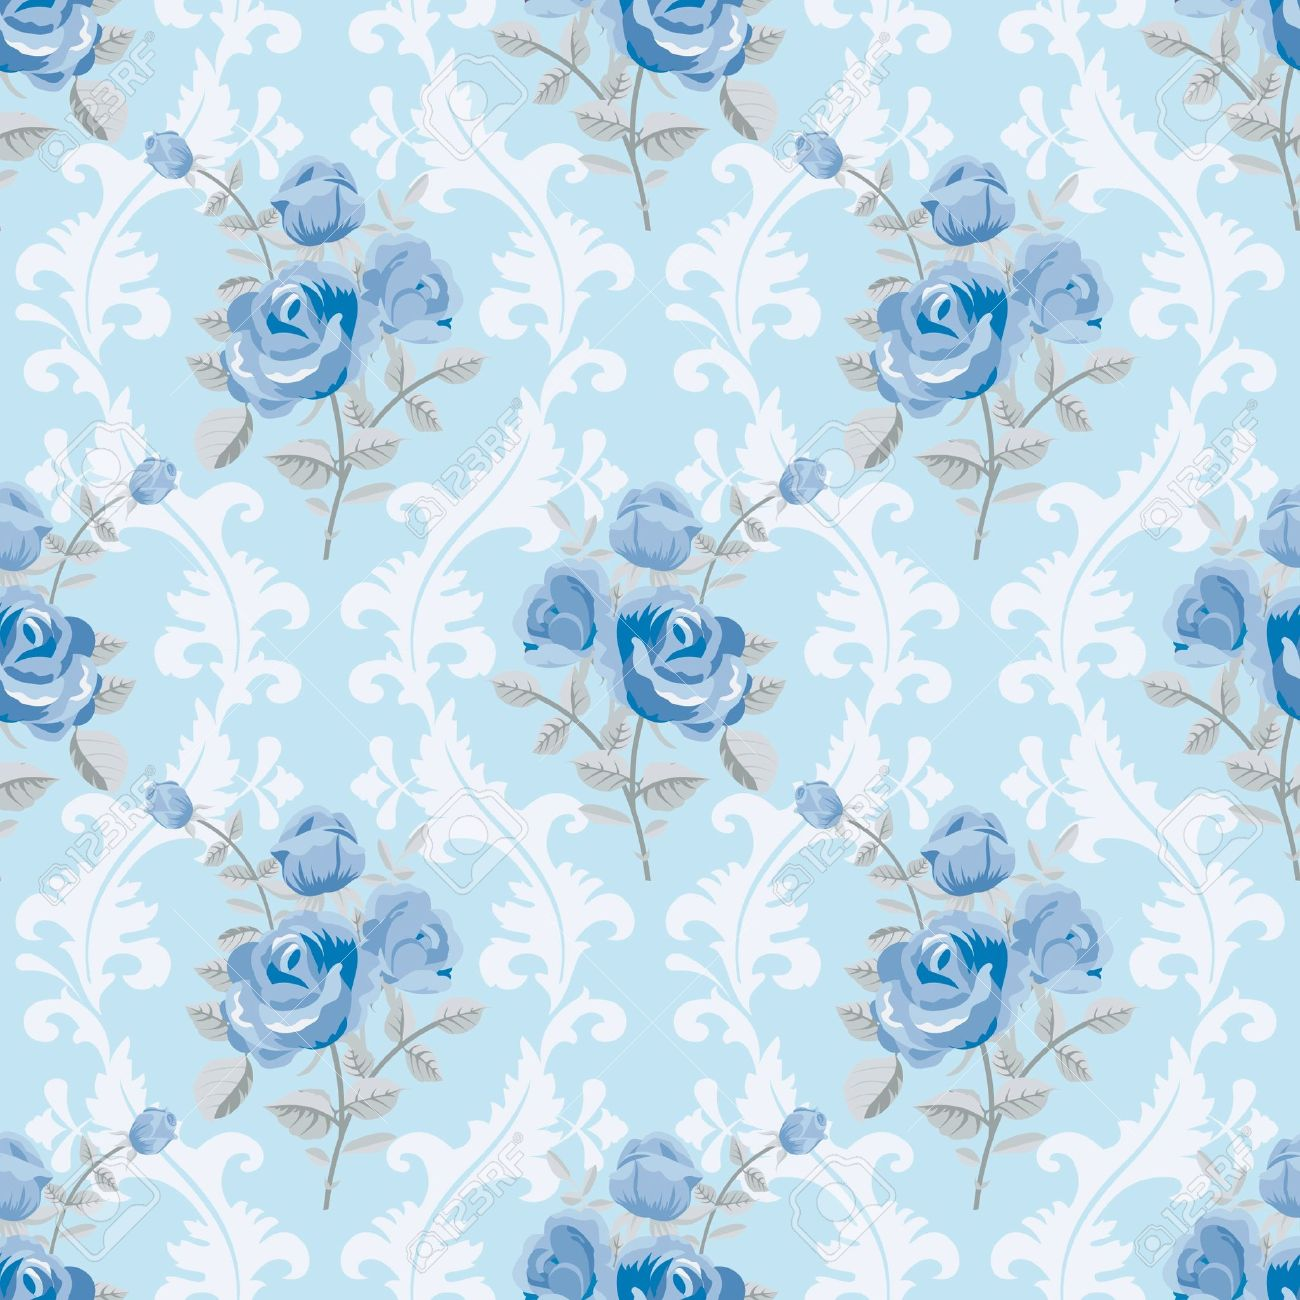 blue roses floral wallpaper royalty free cliparts, vectors, and